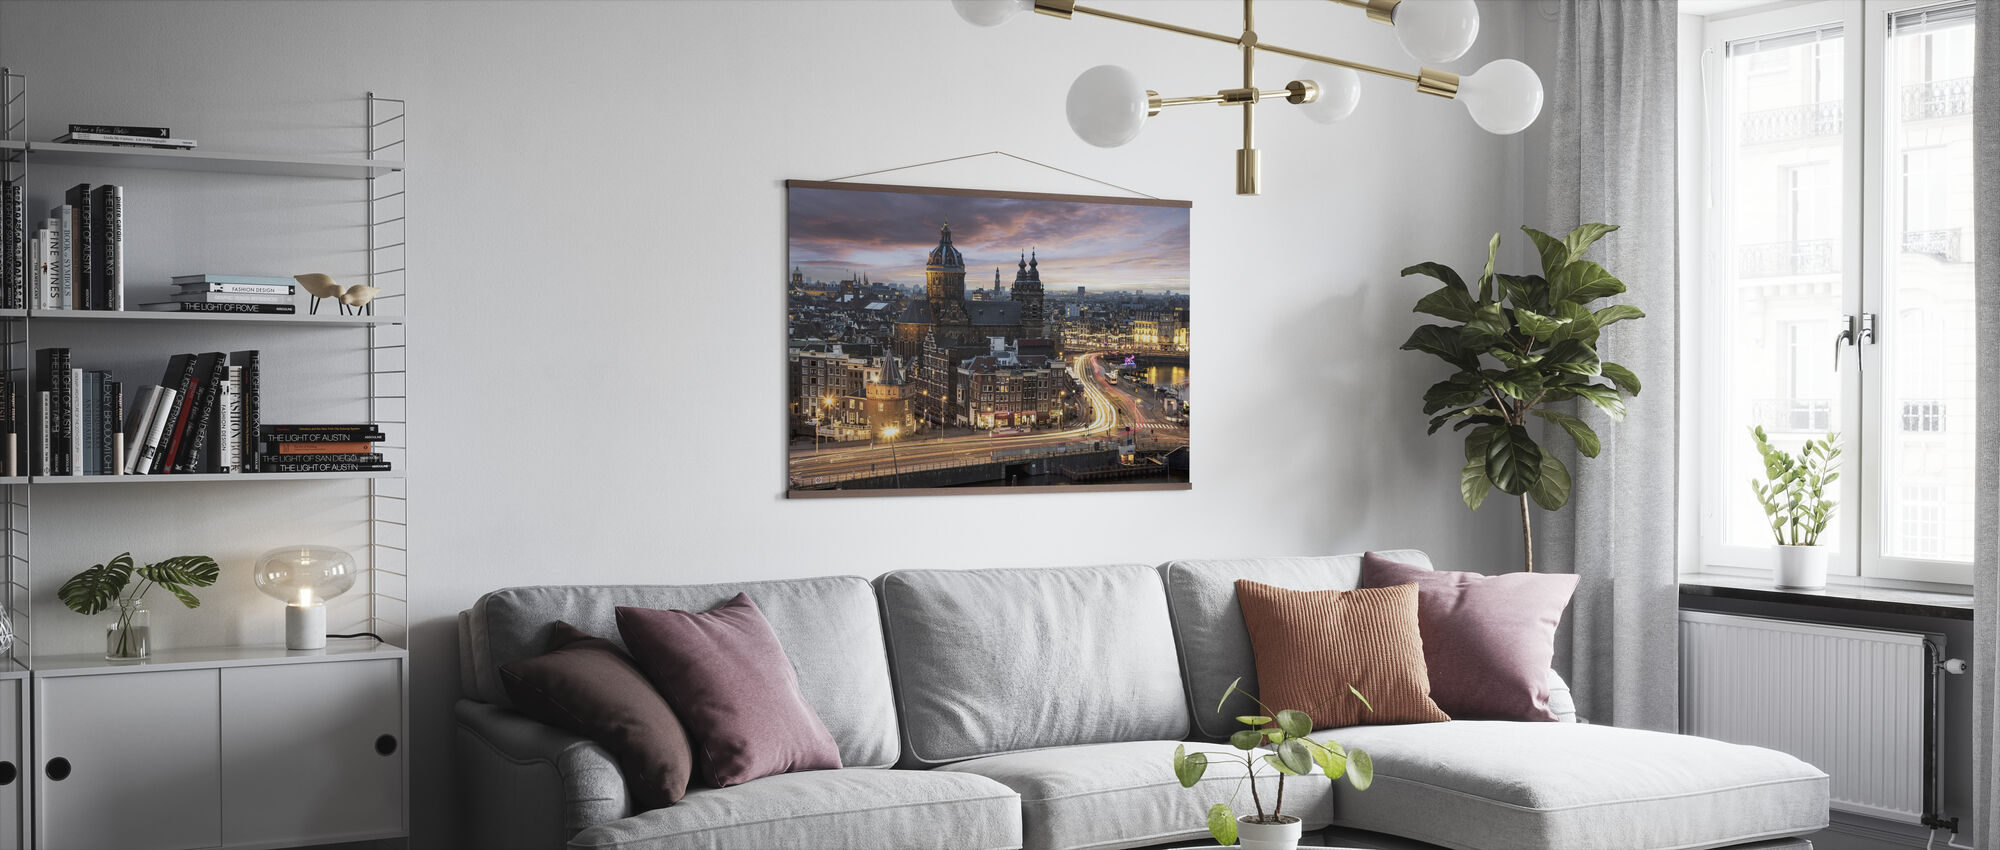 Basilica Saint Nicolas Church in Amsterdam - Poster - Living Room